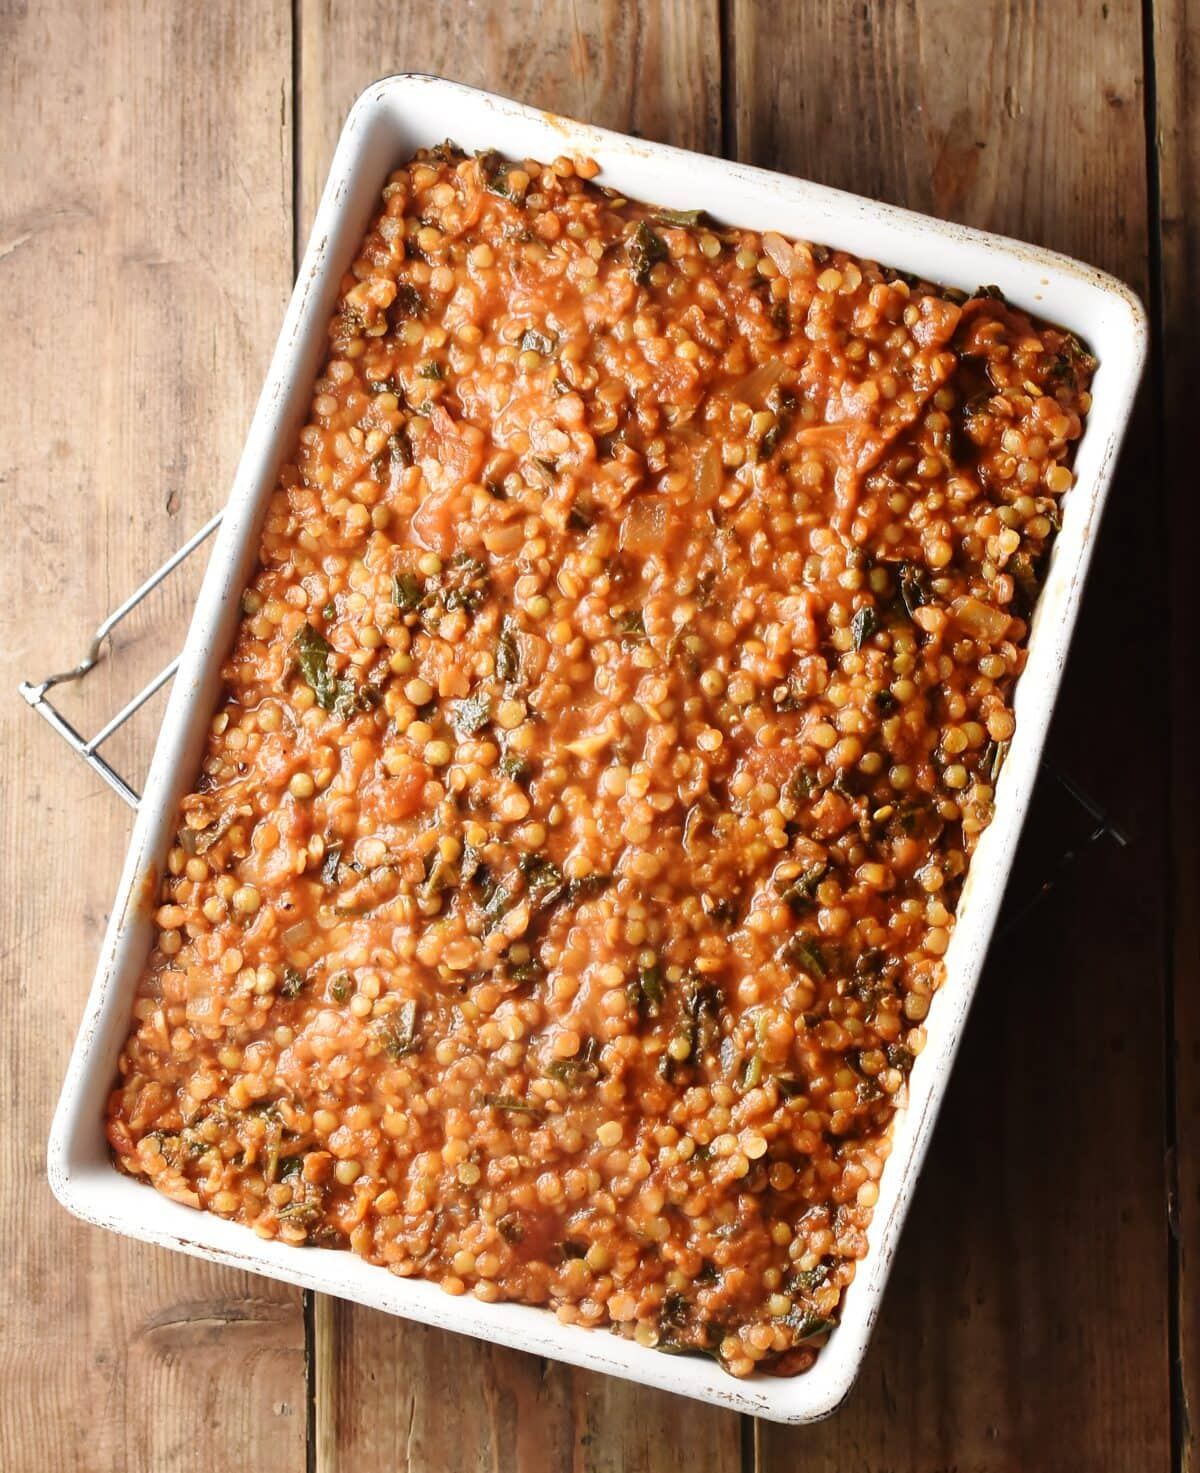 Lentil and tomato mixture in rectangular white dish.